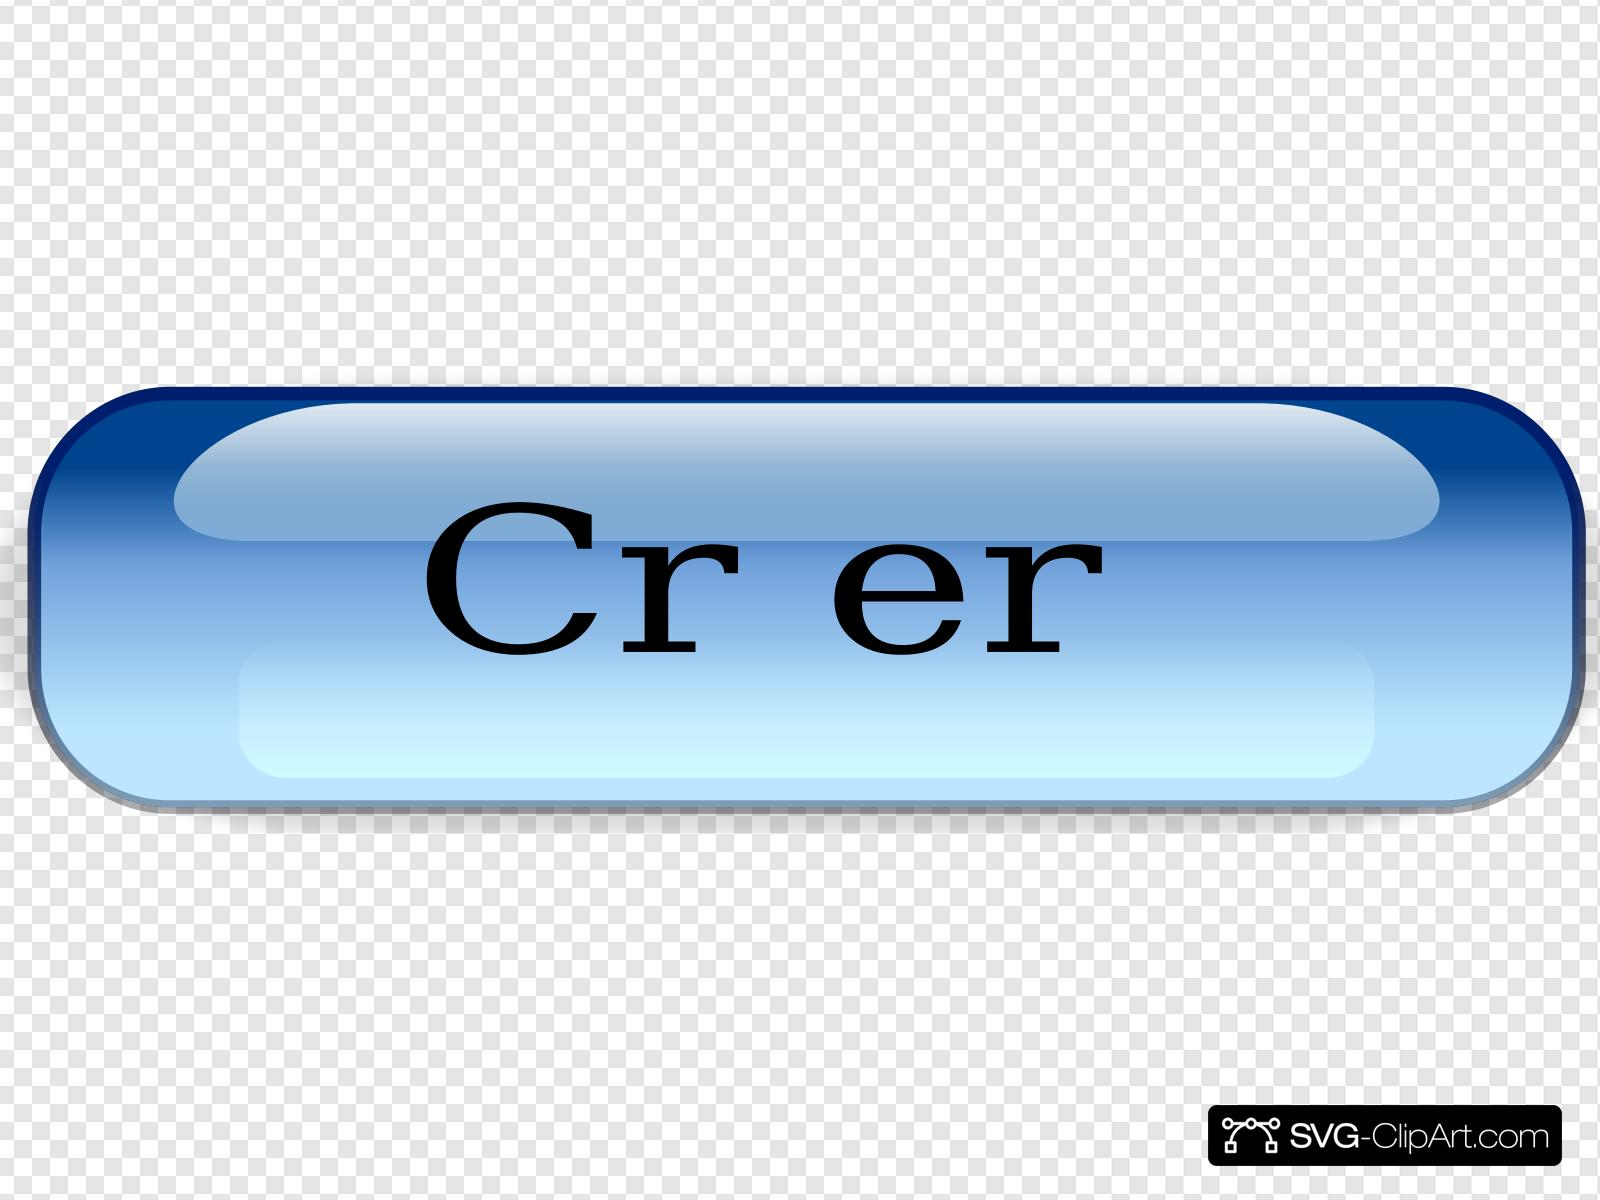 Creer.png Clip art, Icon and SVG.